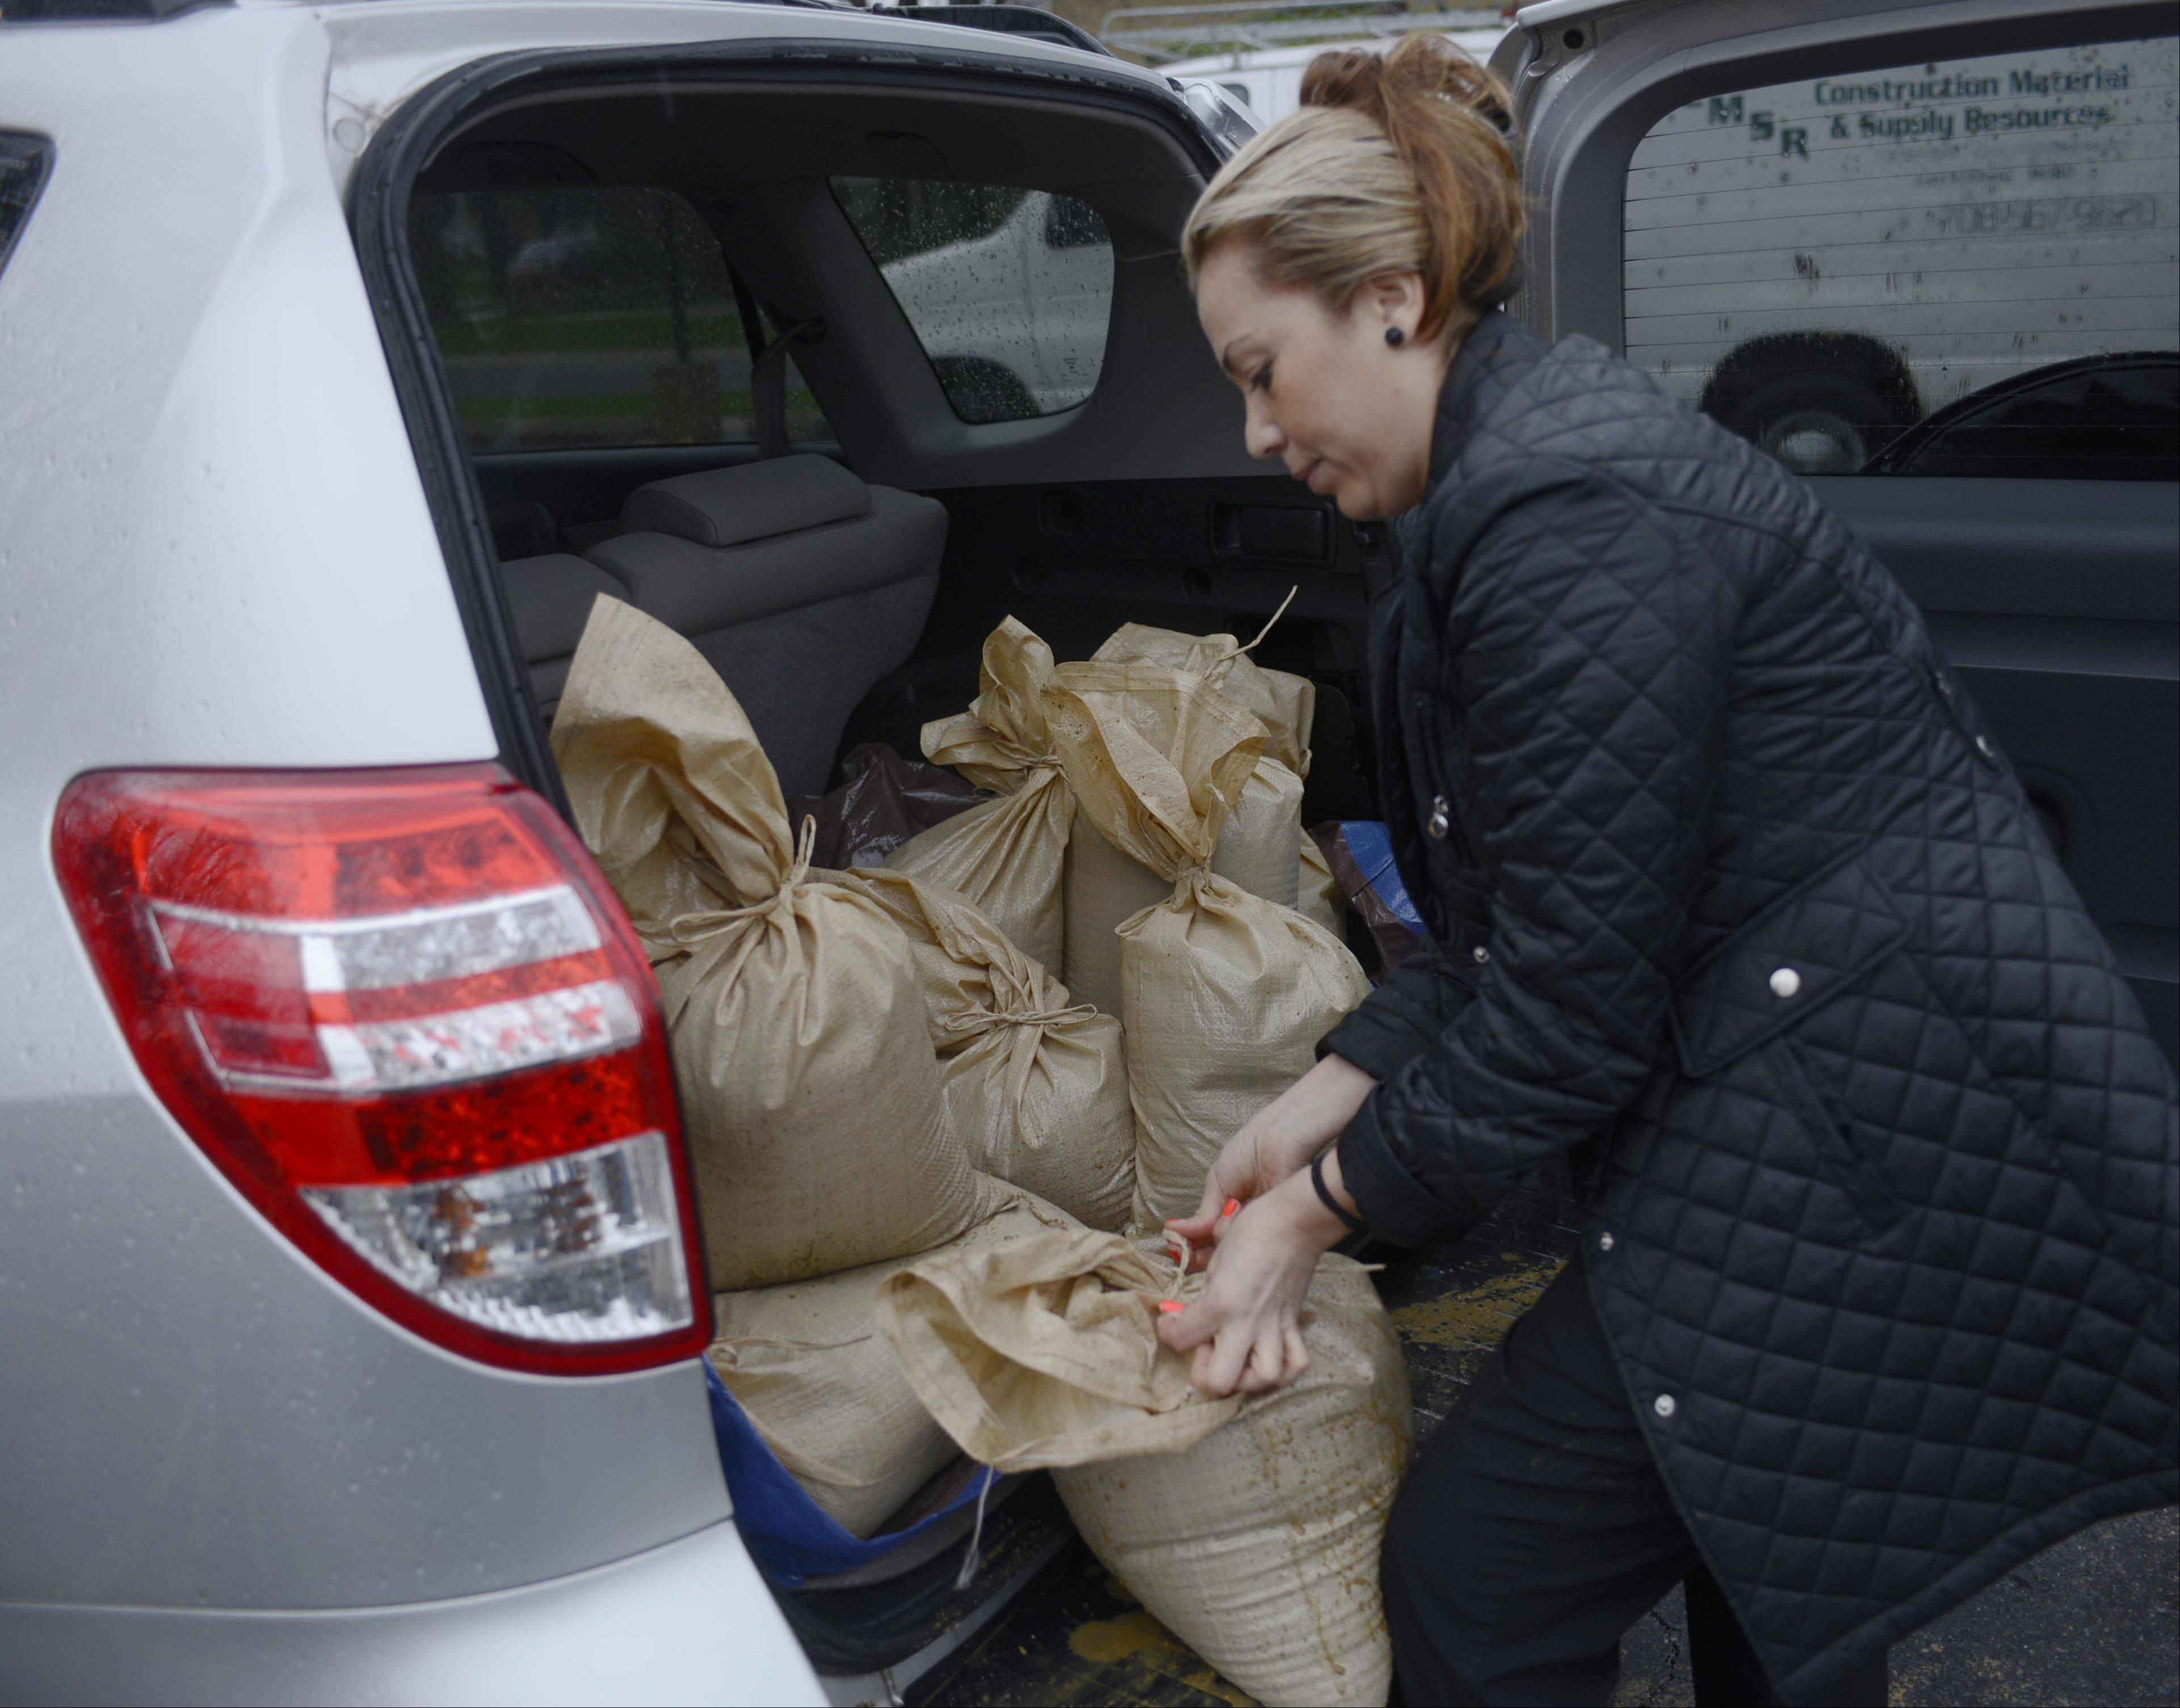 Martha Martinez ties sandbags loaded in the back of her van at the Christ Church parking lot as floodwaters rise in Des Plaines Thursday.